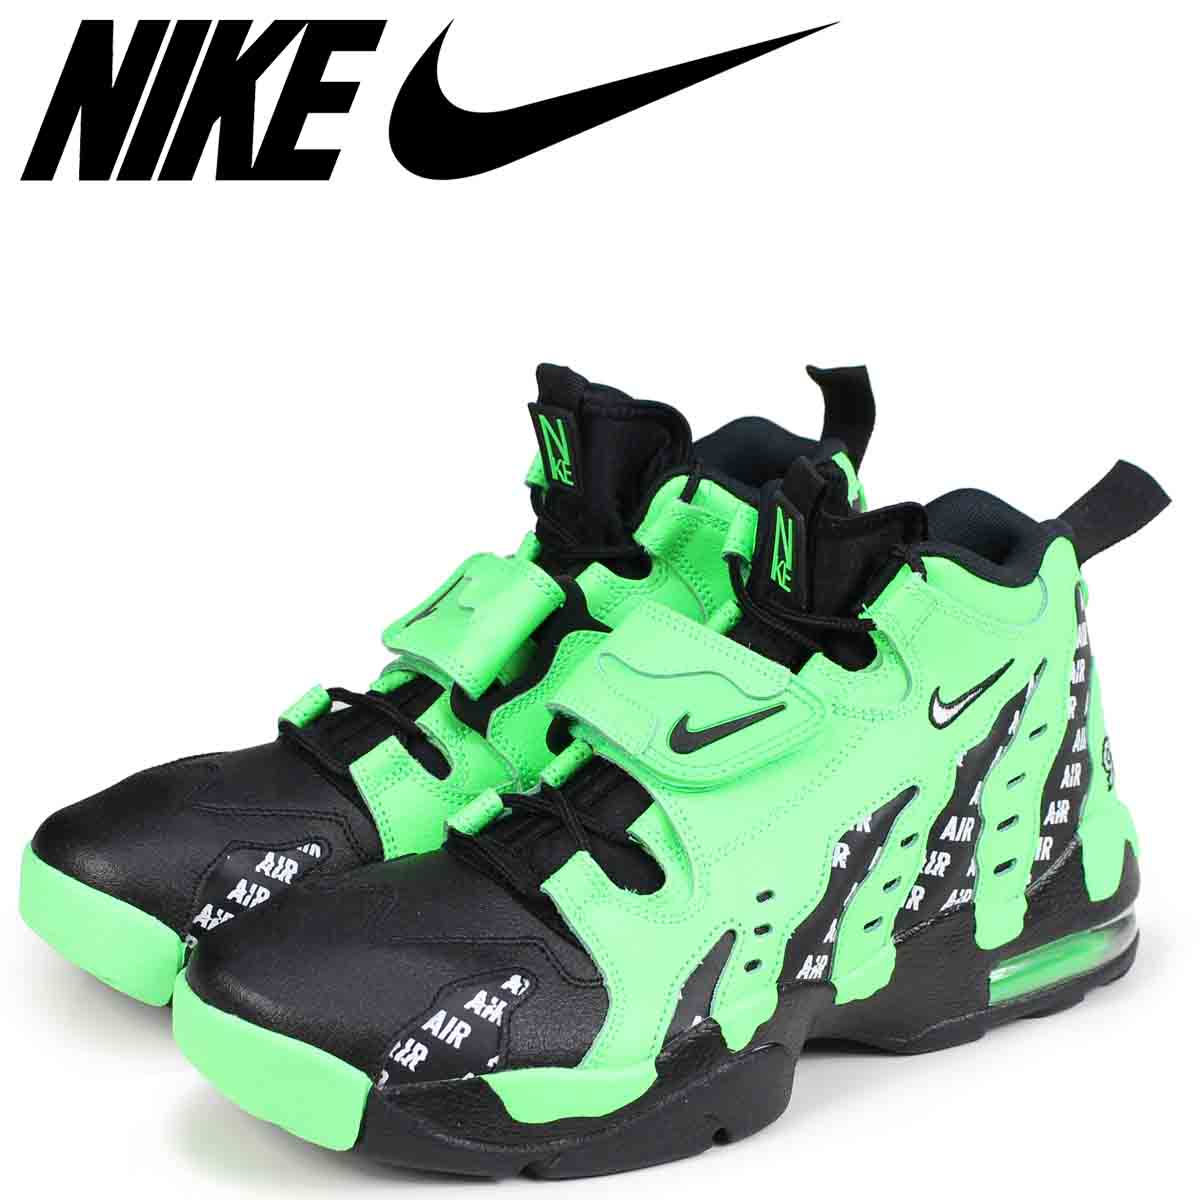 b6274d46f4b9 NIKE Nike air DT max 96 sneakers men AIR DT MAX 96 AQ5100-300 green  load  planned Shinnyu load in reservation product 8 23 containing